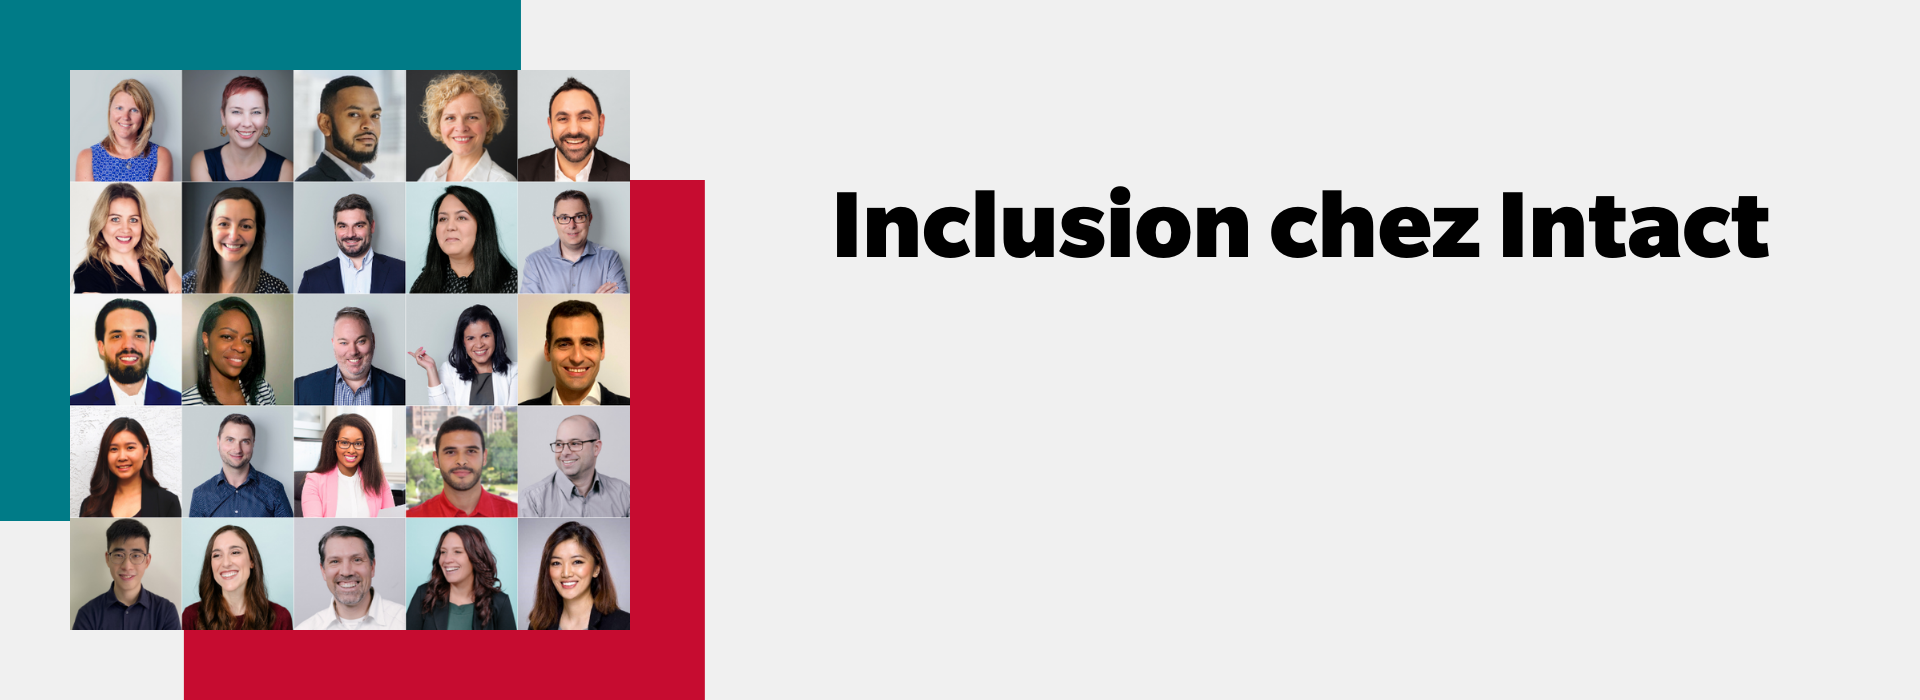 Inclusion at Intact